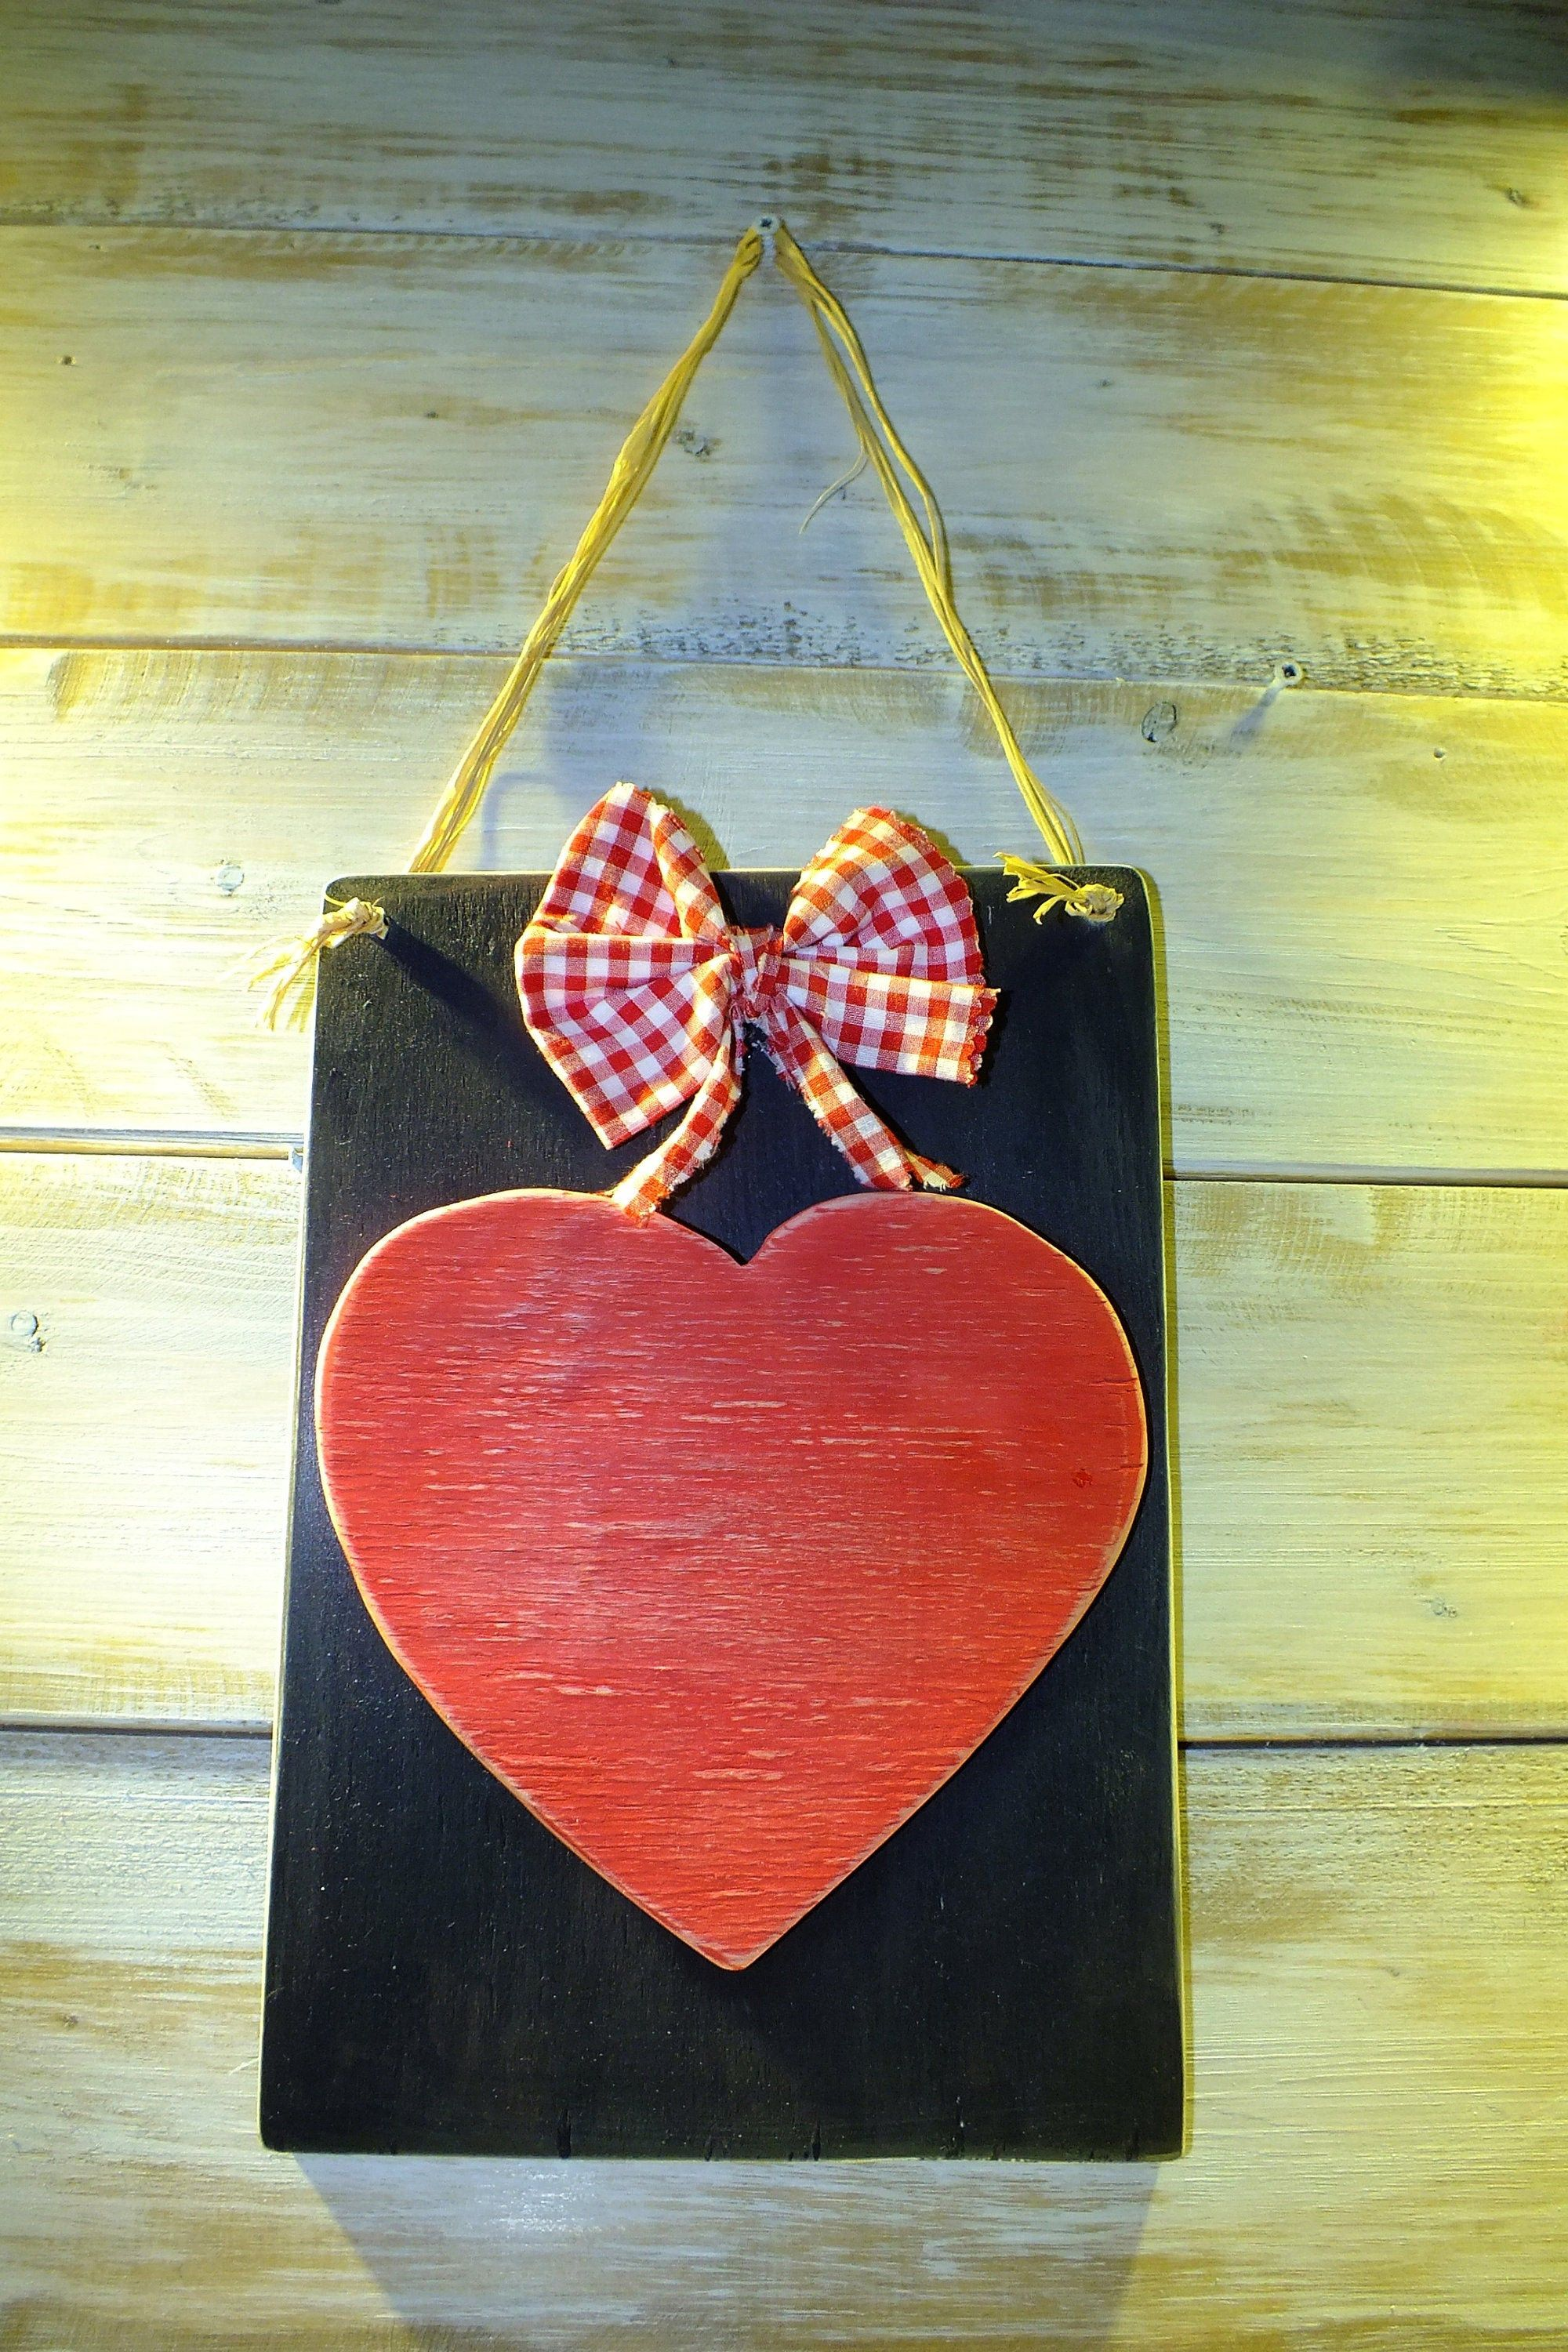 Hanging Wooden Hearts Rustic Red Hearts For Door Or Indoors Valentine S Day Decor Romantic Decor Heart Board Heart Romantic Decor Heart Ornament Wooden Hearts